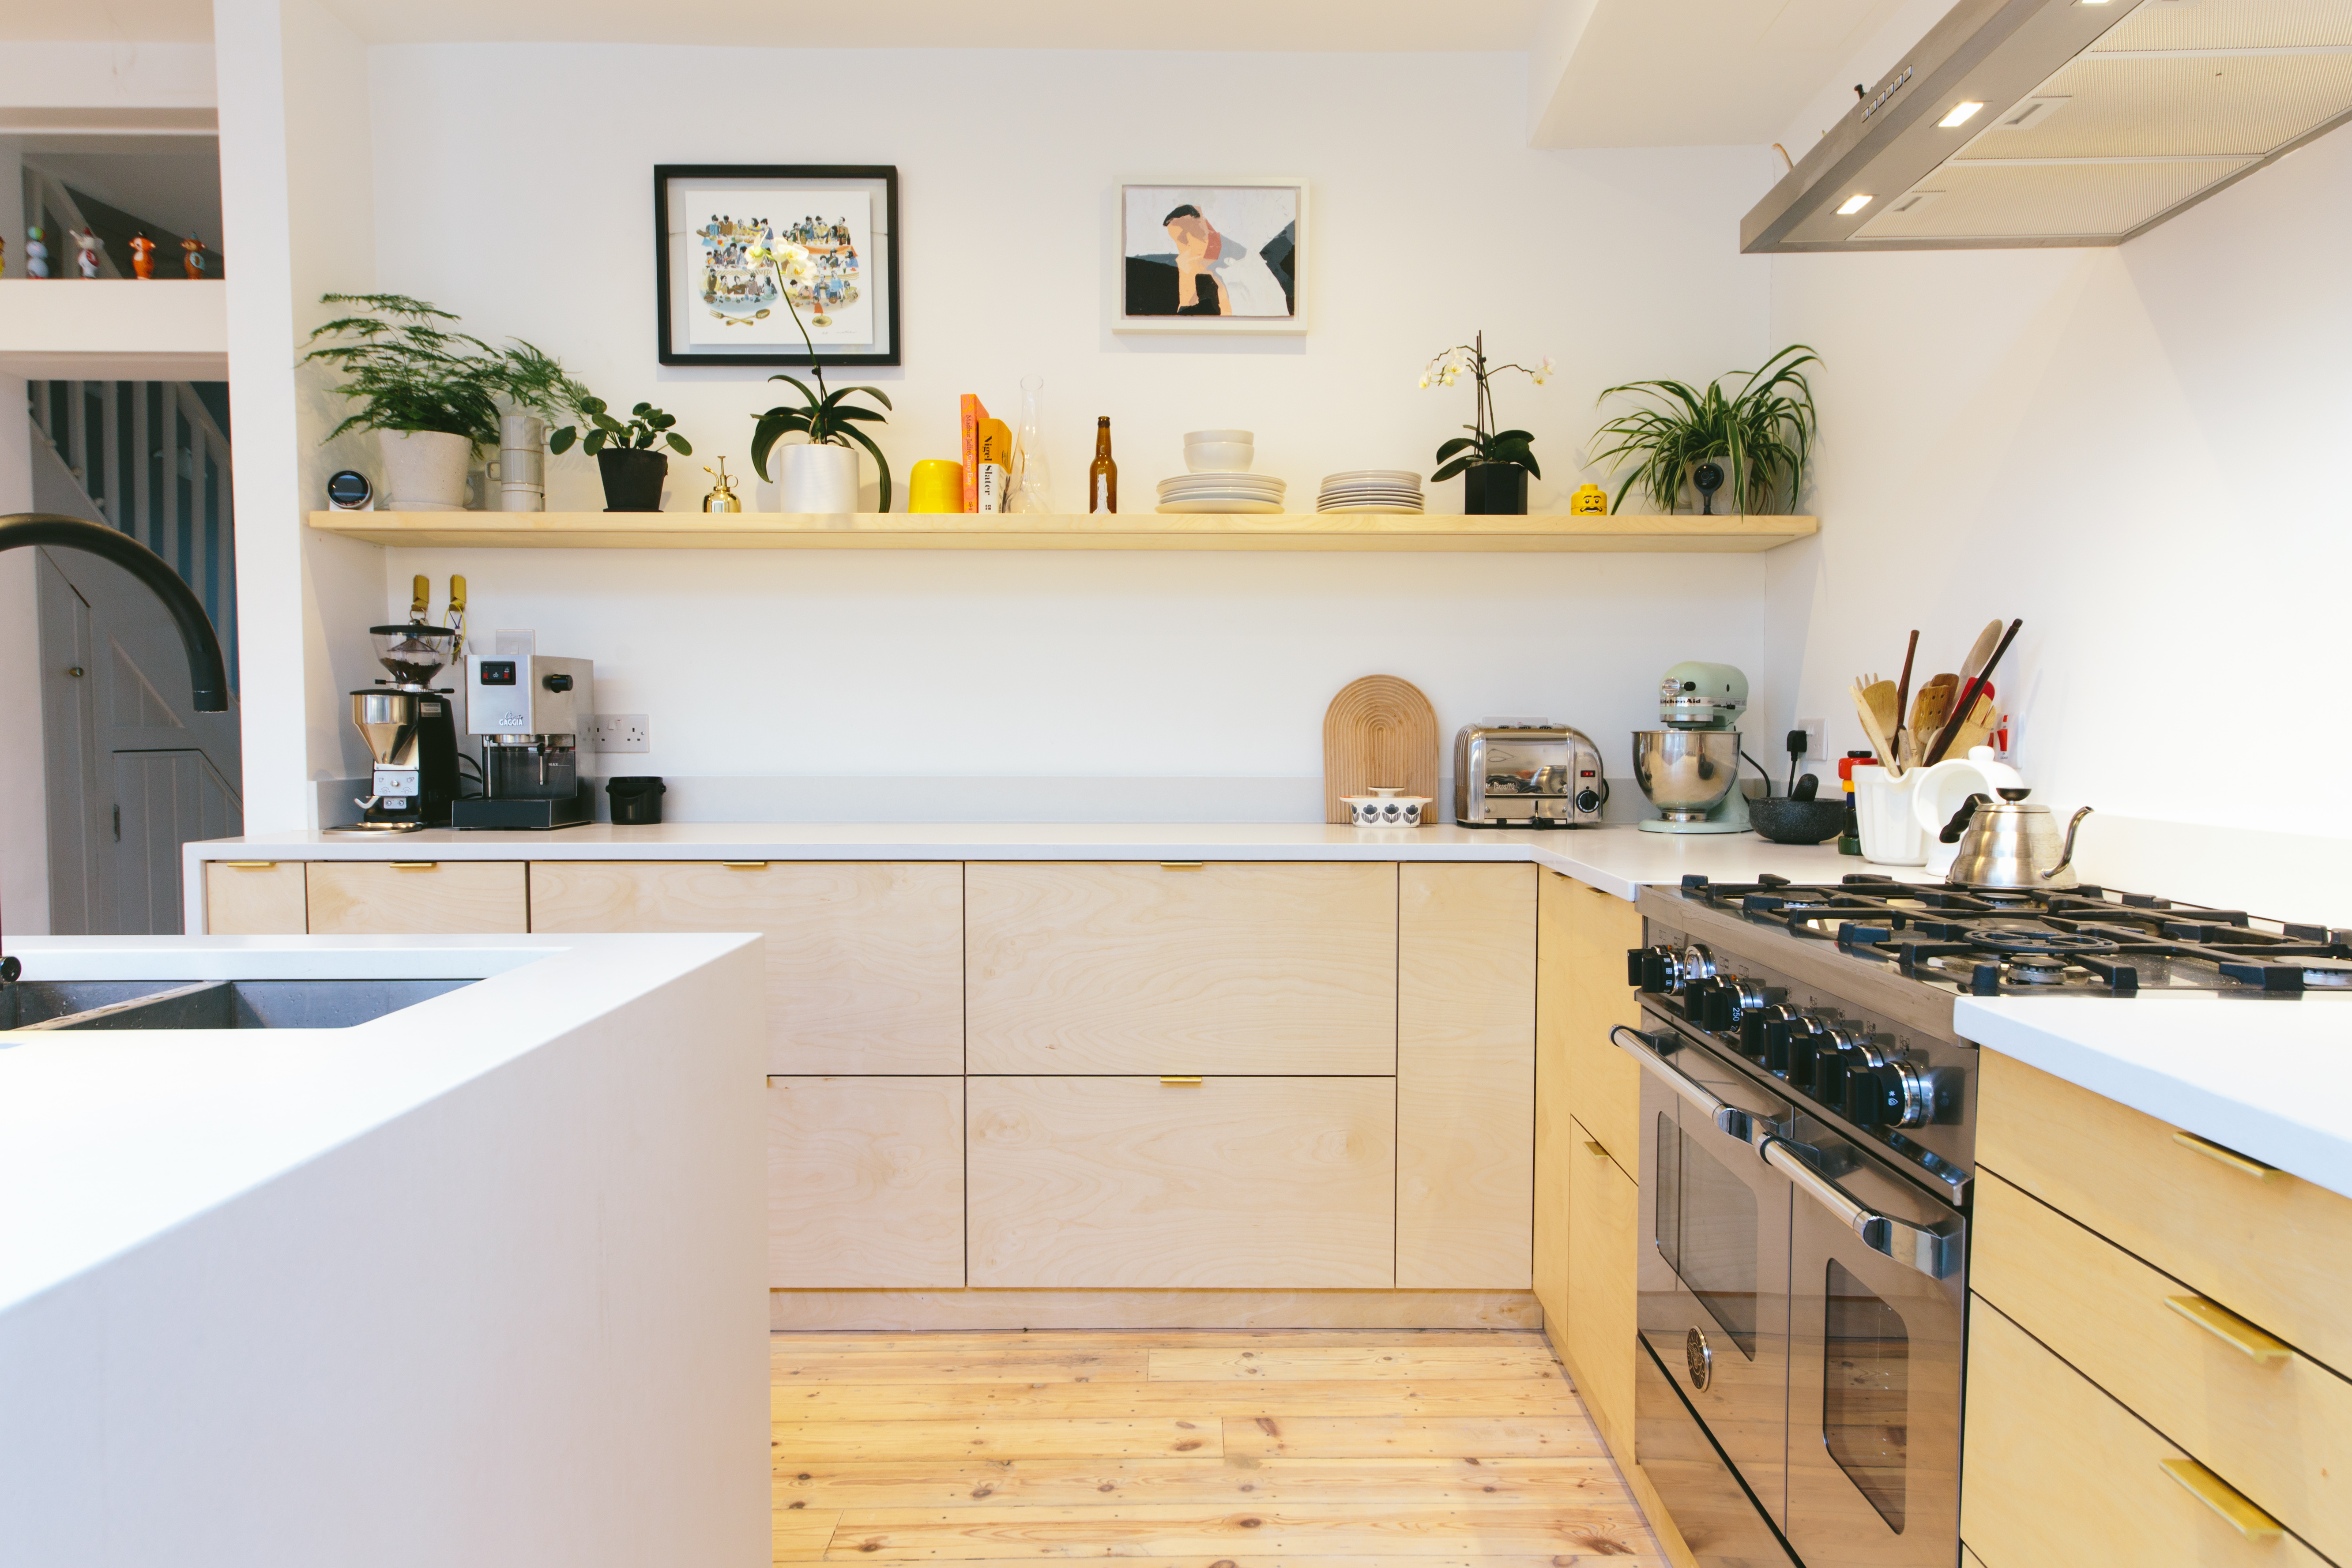 Ikea kitchen cabinets hacked with plywood by new company Plykea